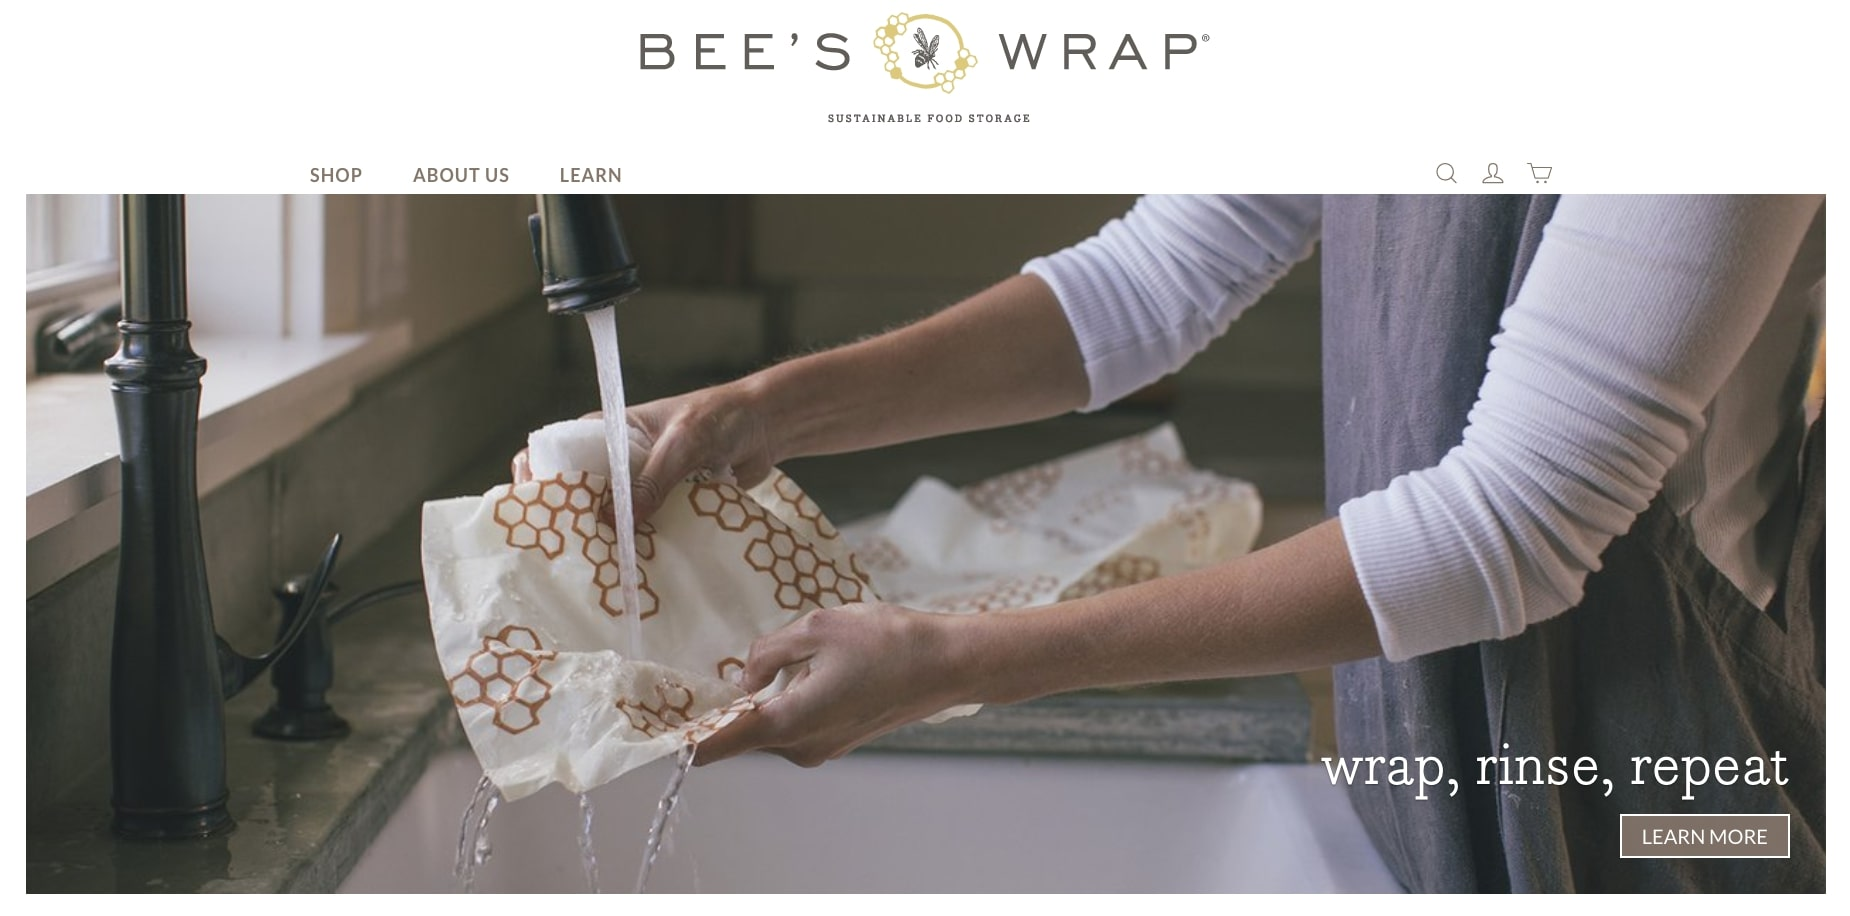 bee's wrap is an example of a niche market business